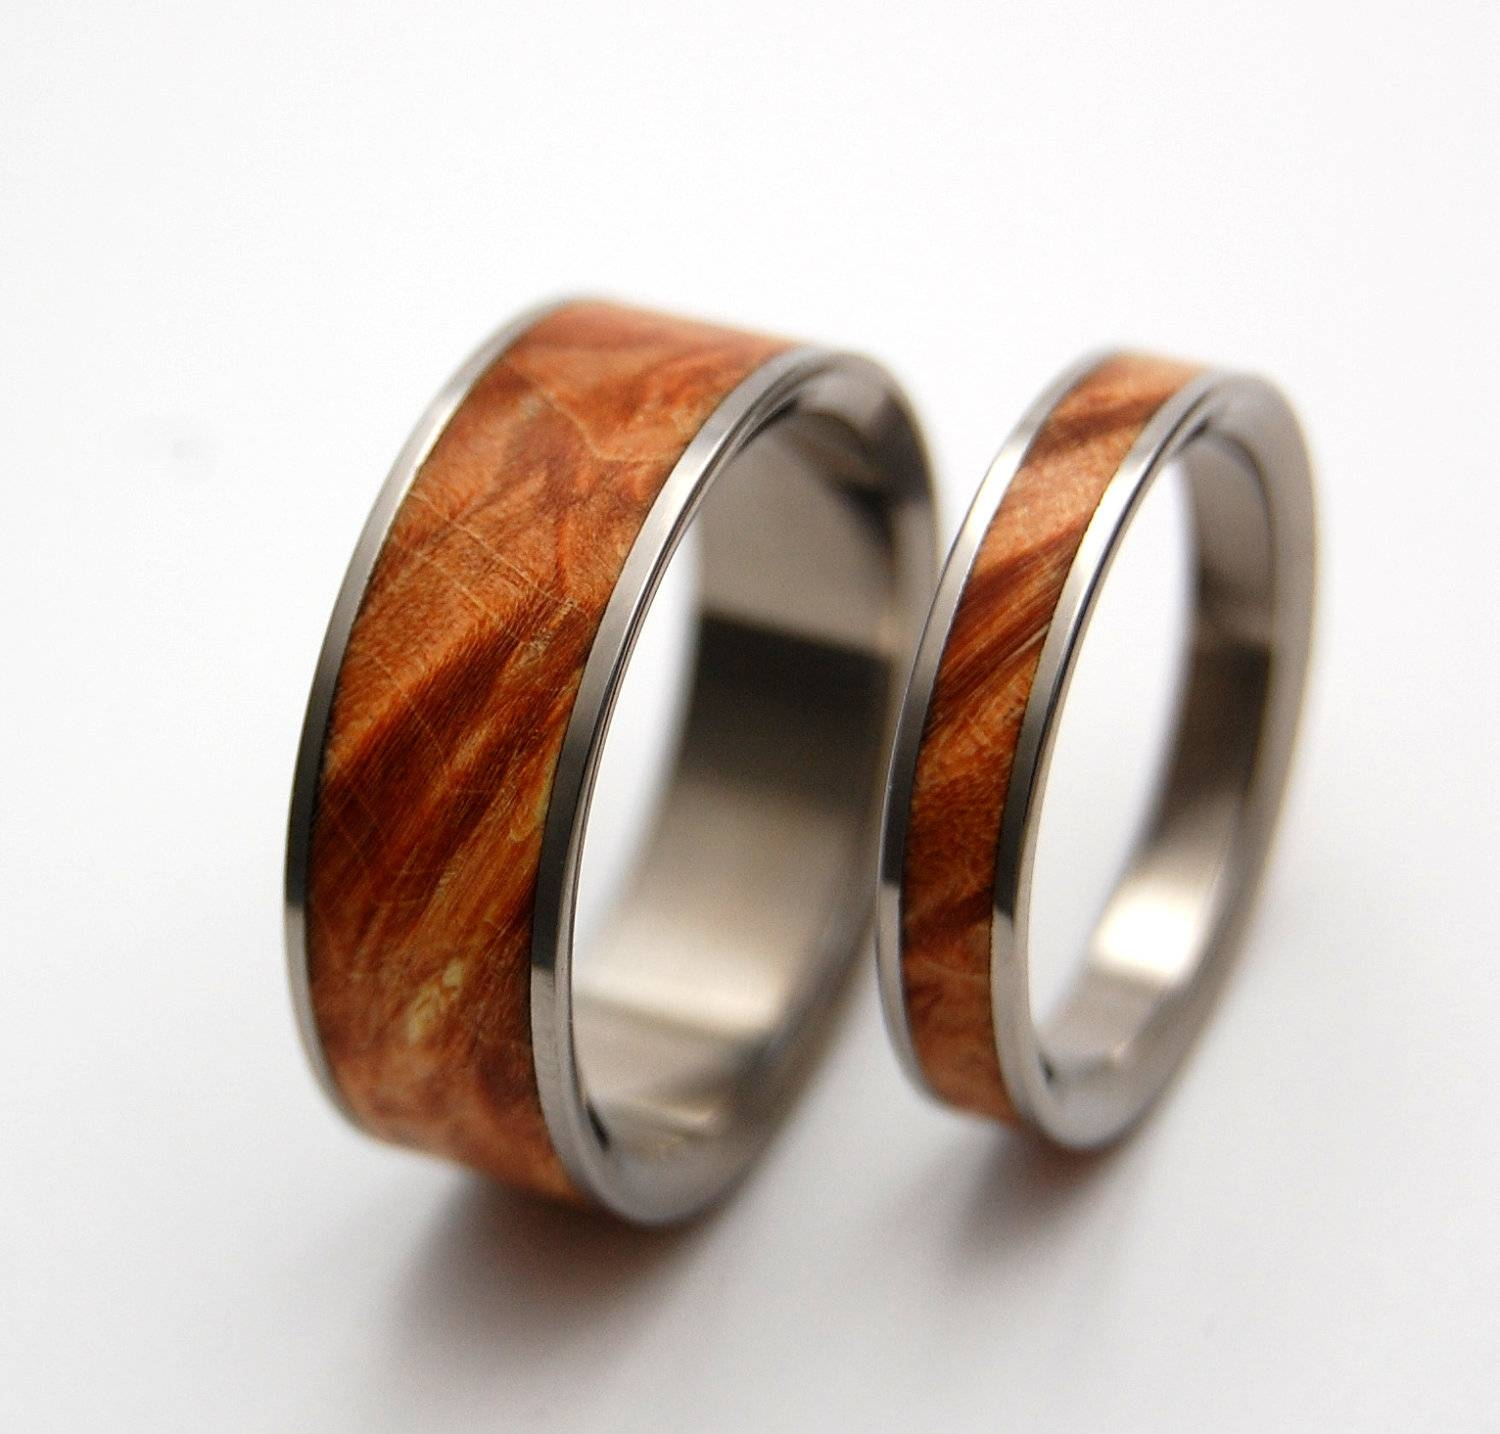 Wedding Rings Titanium Rings Wood Rings Mens Rings Intended For Wood Wedding Bands (View 2 of 15)